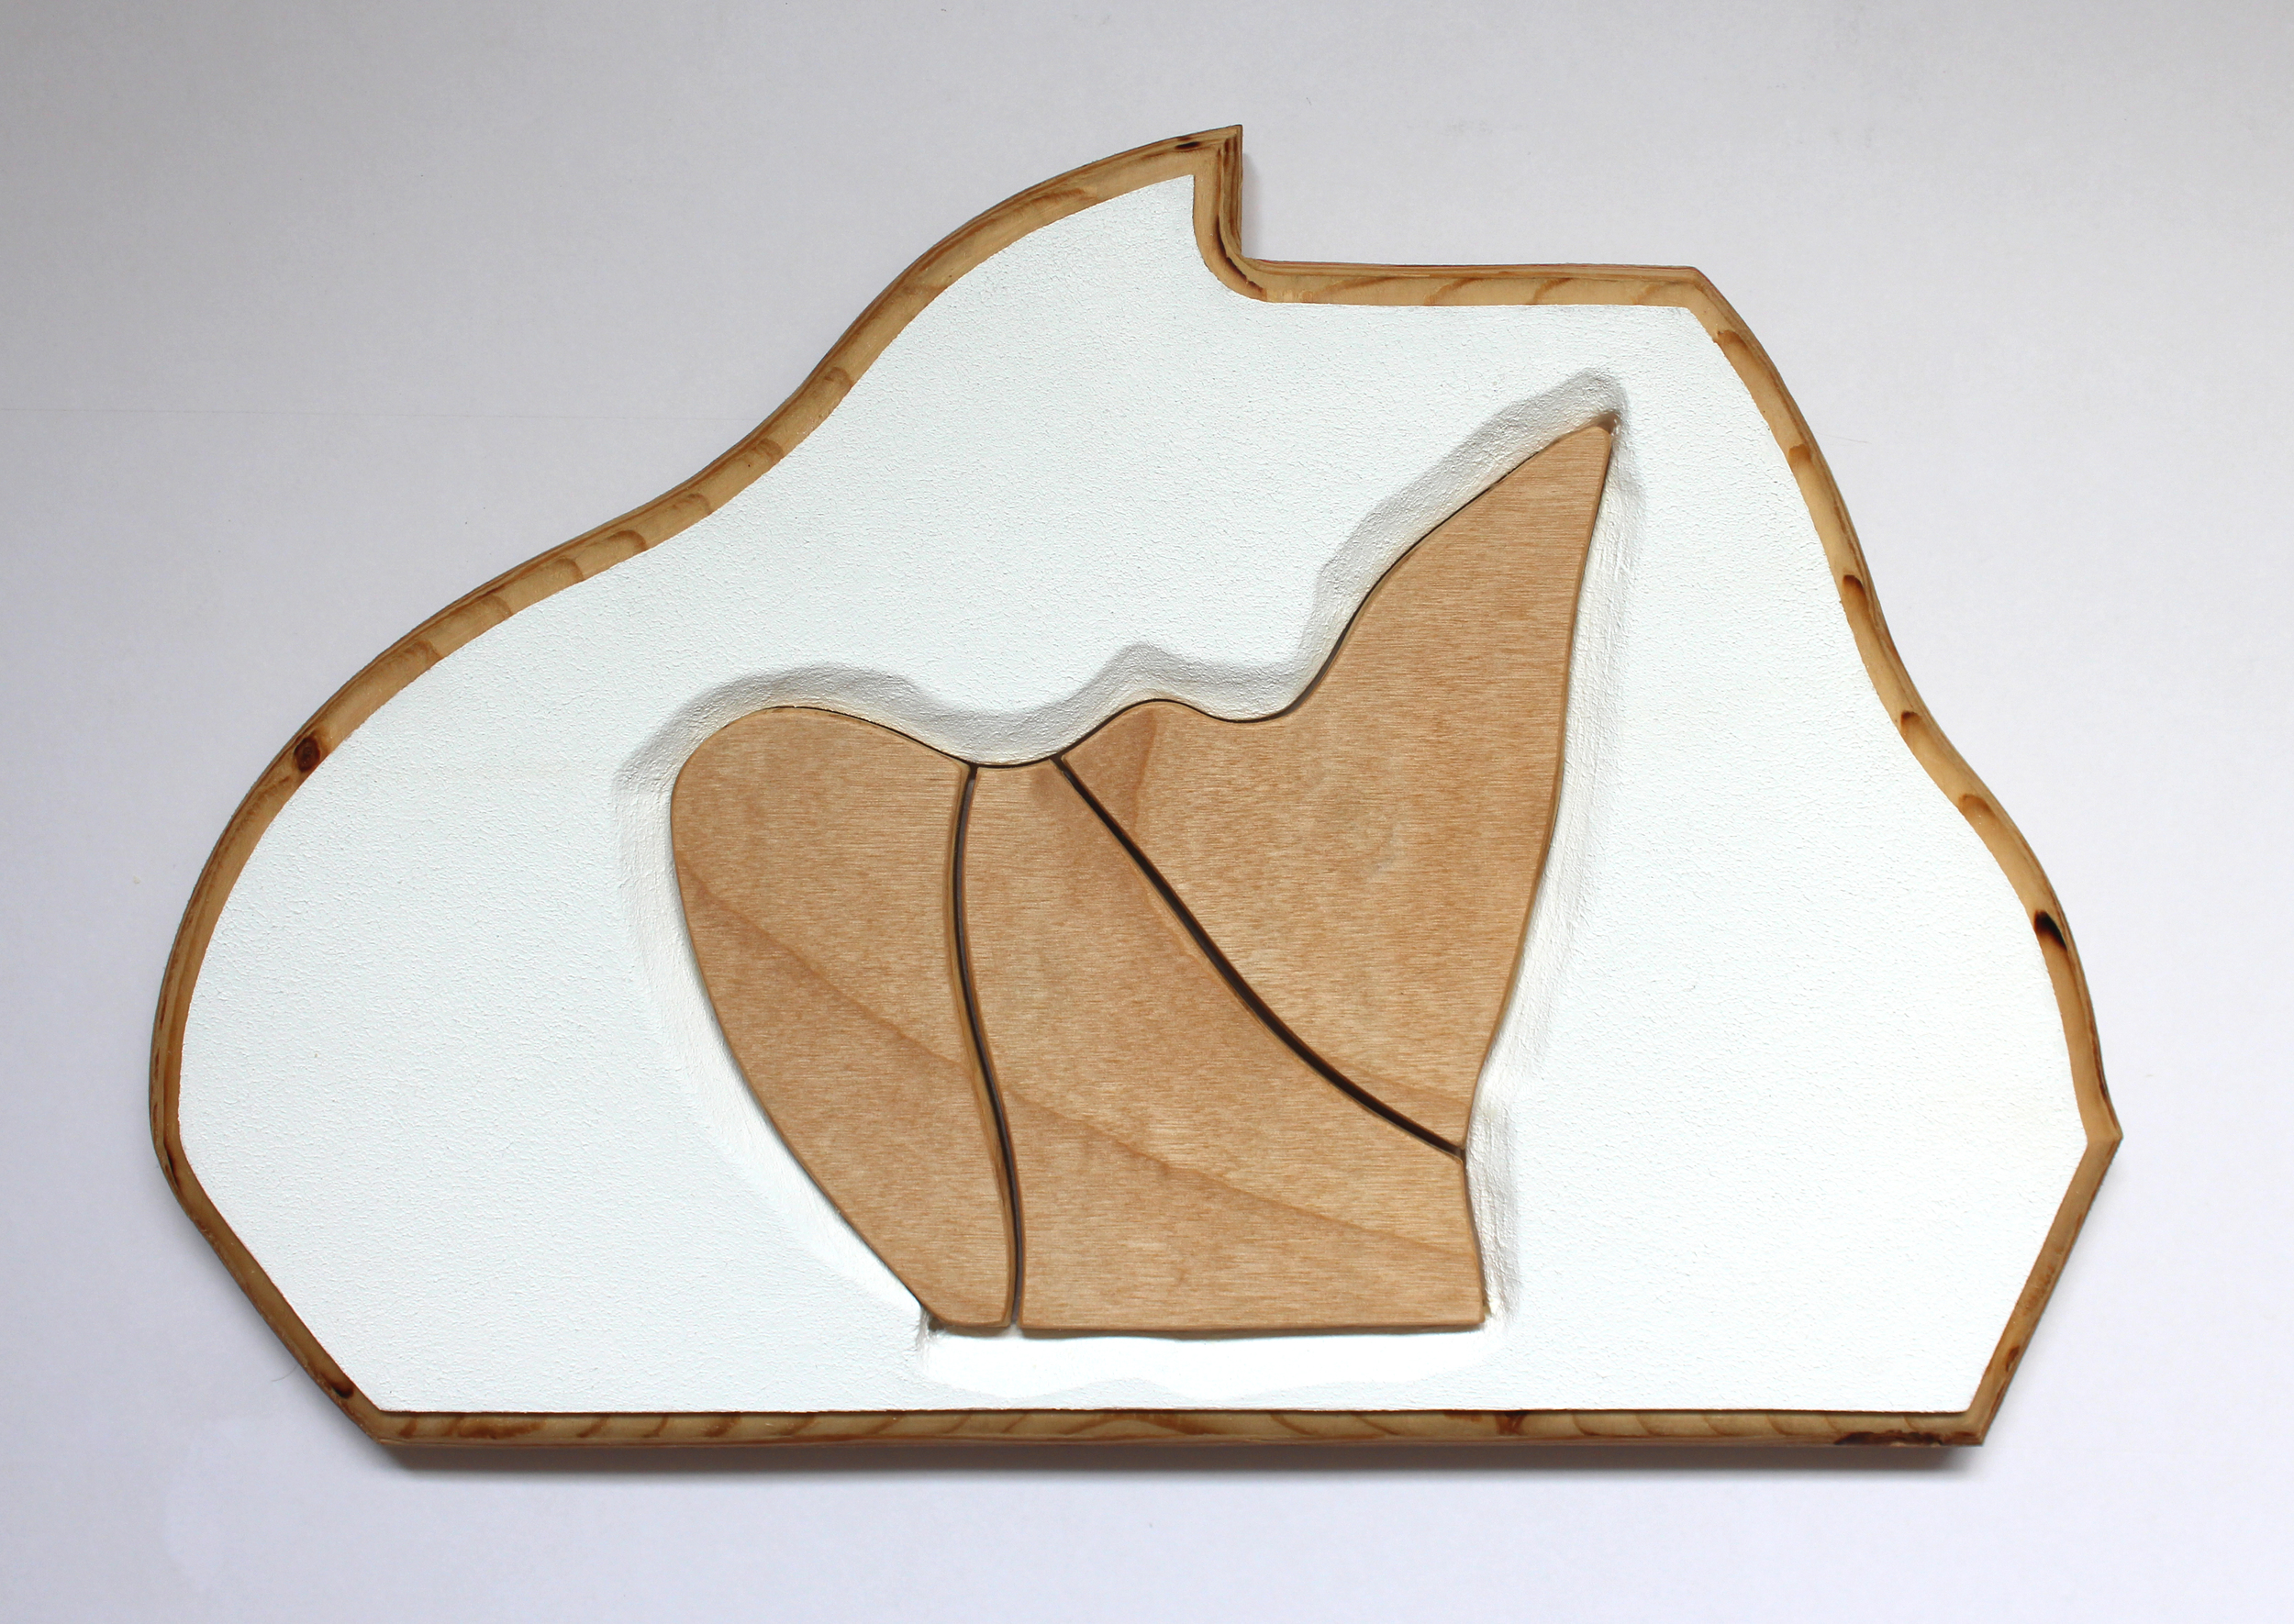 Acrylic, Birch, and Plywood, 14 7/8 X 10 Inches